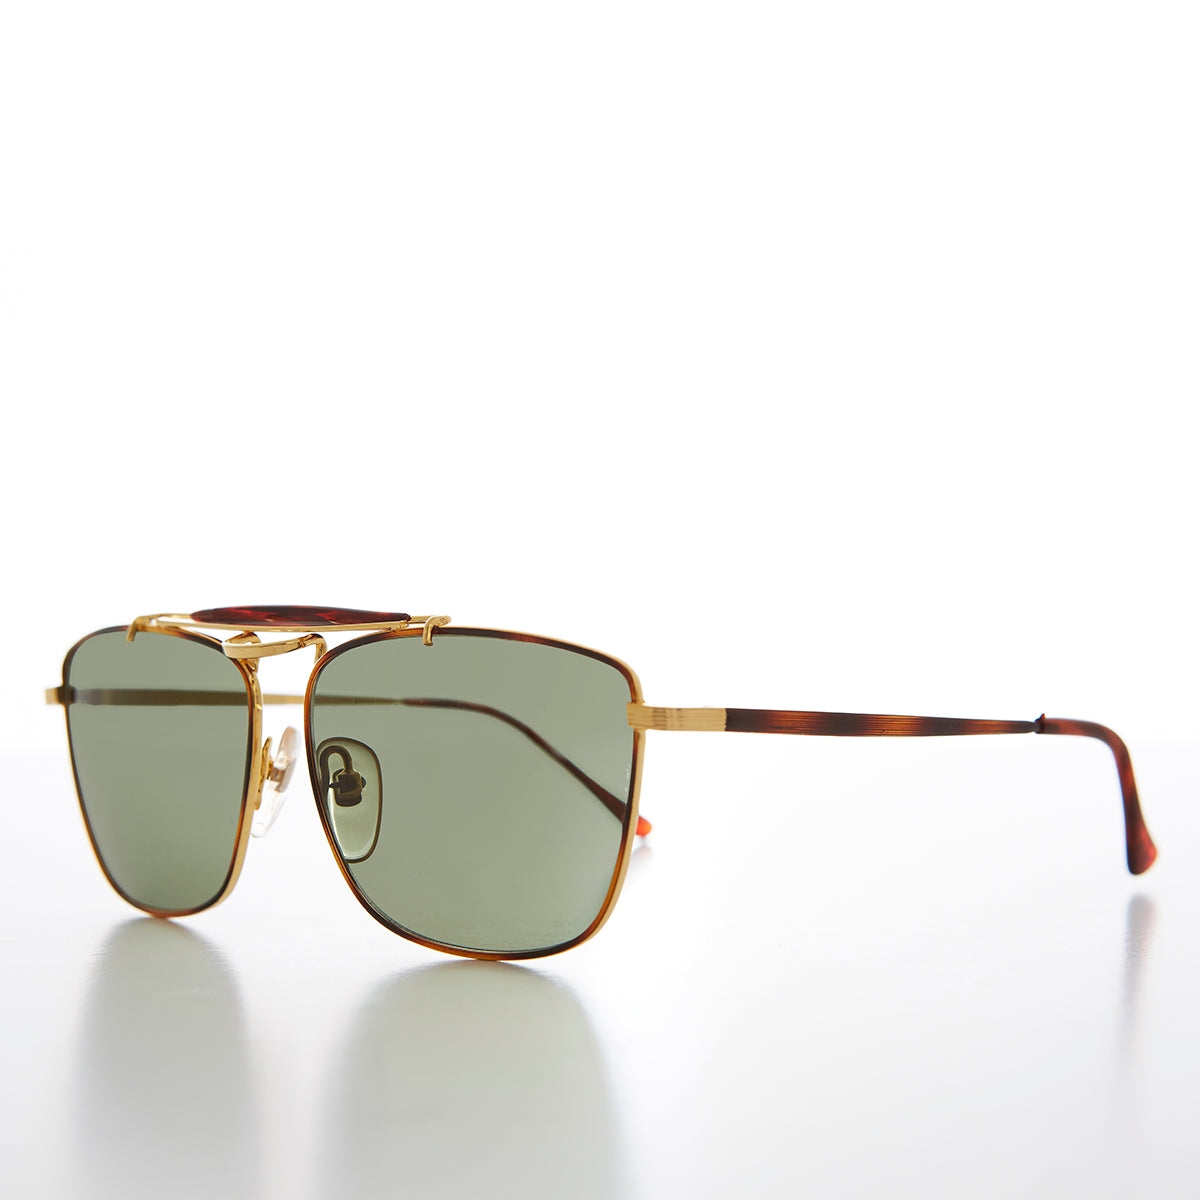 Gold Racing Aviator Vintage Sunglass